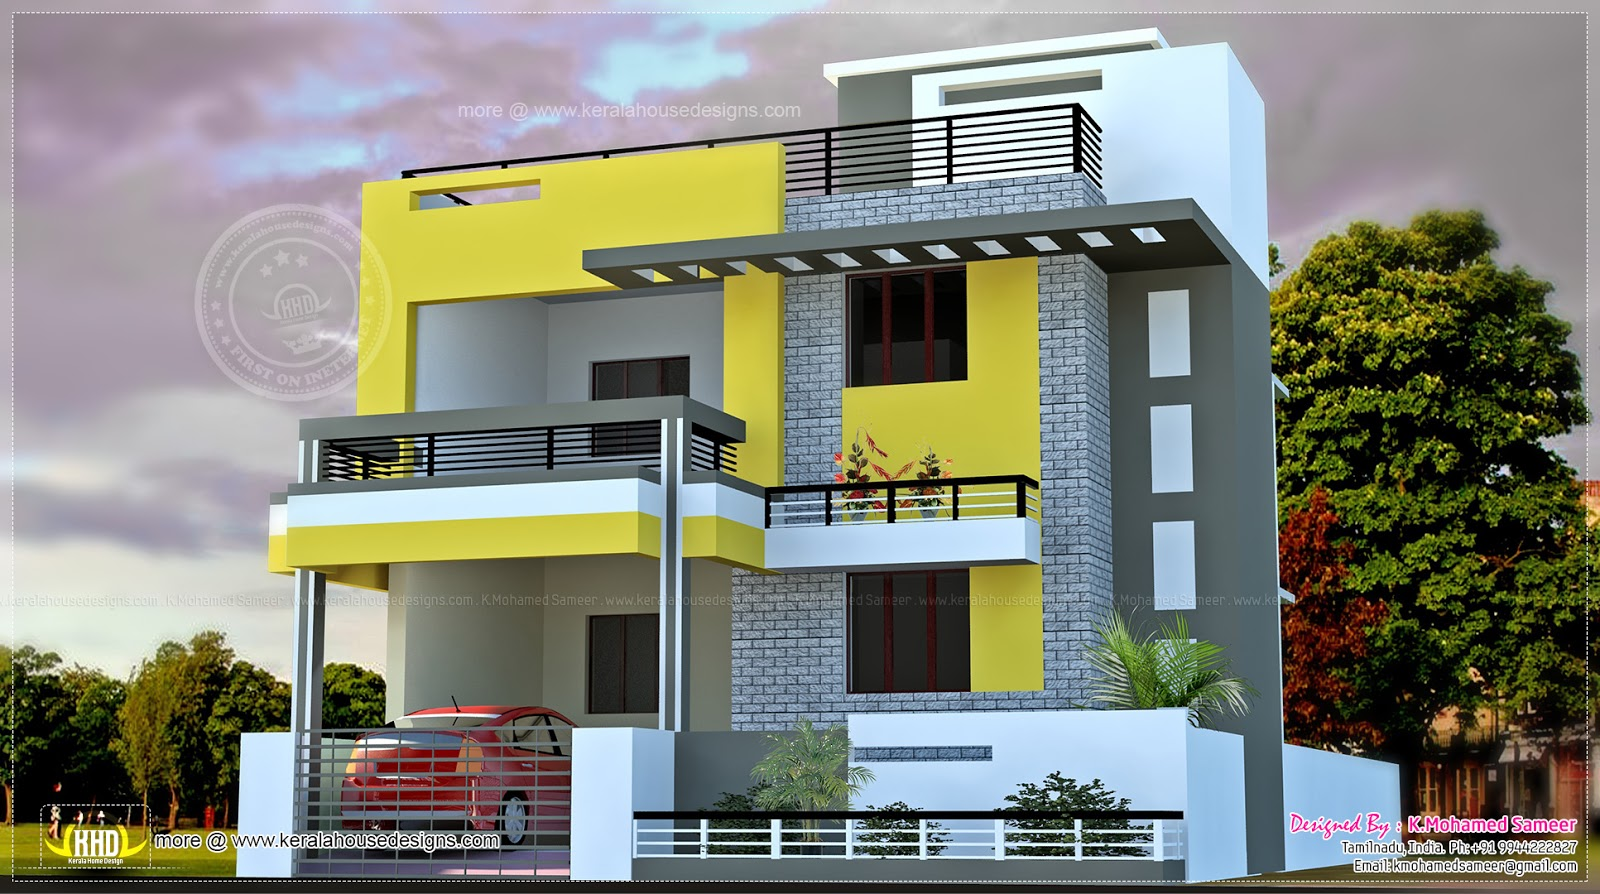 India house plan in modern style kerala home design and for Model house photos in indian